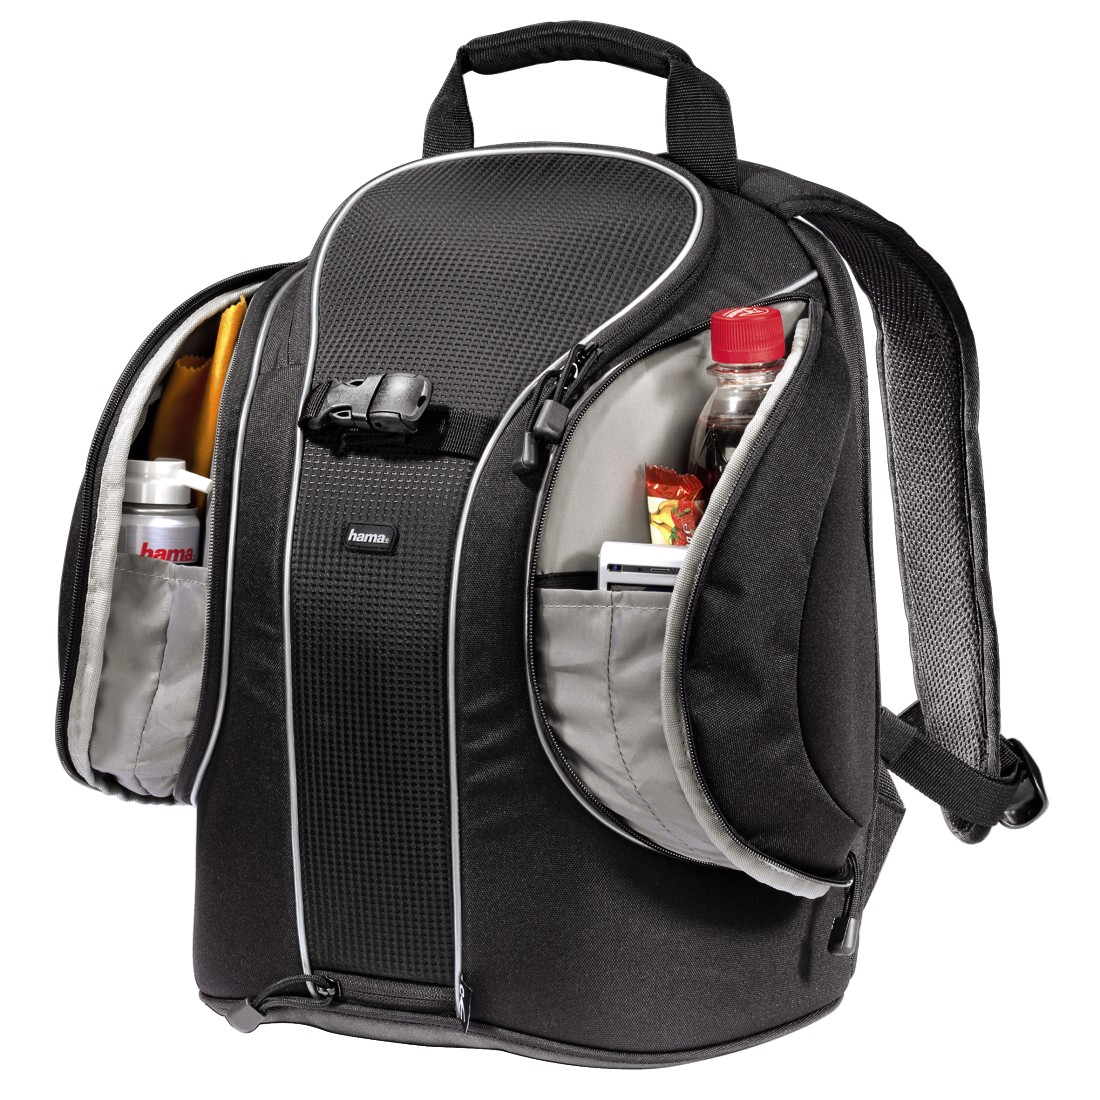 awx3 High-Res Appliance 3 - Hama, Daytour Camera Backpack, 180, black